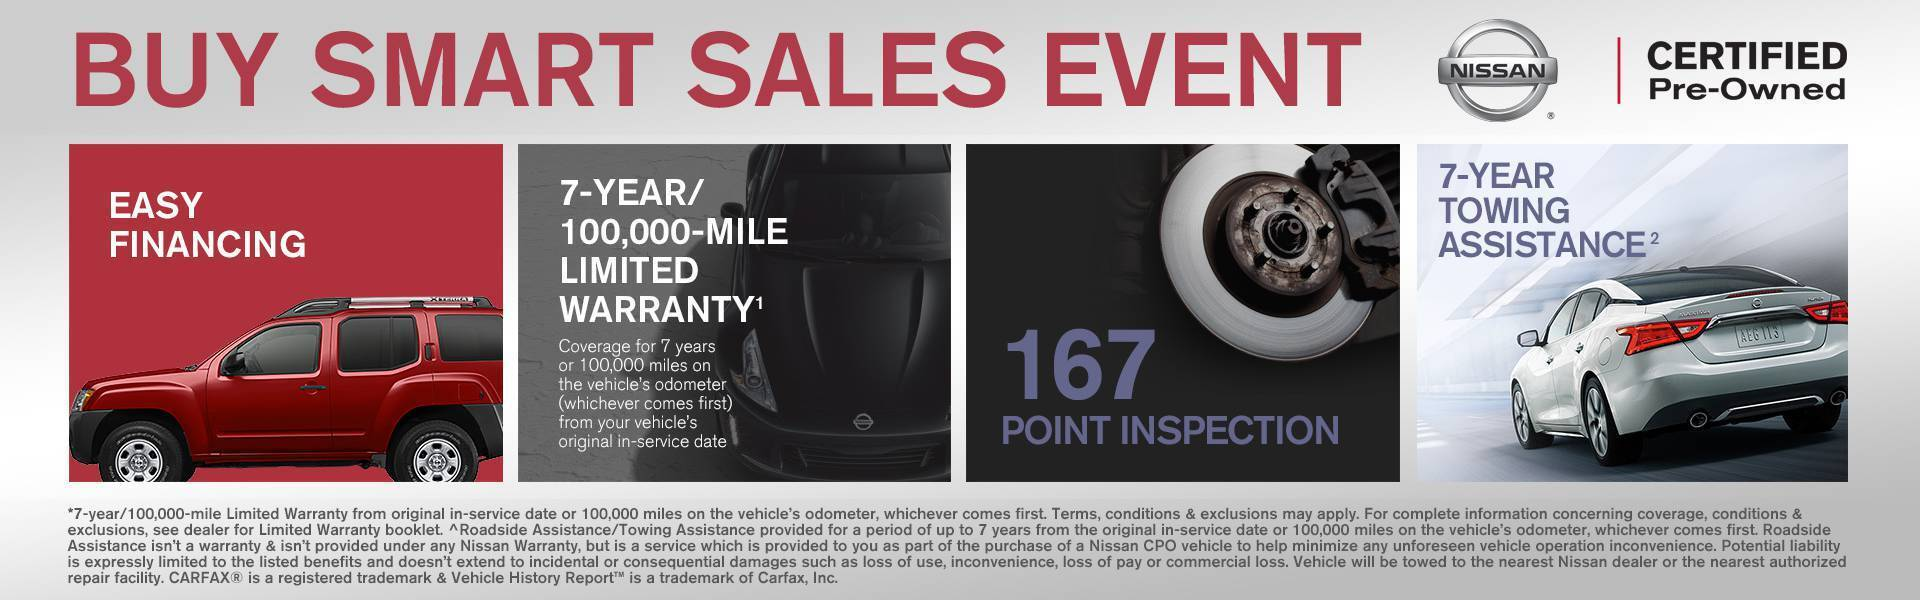 Buy Smart Sales Event